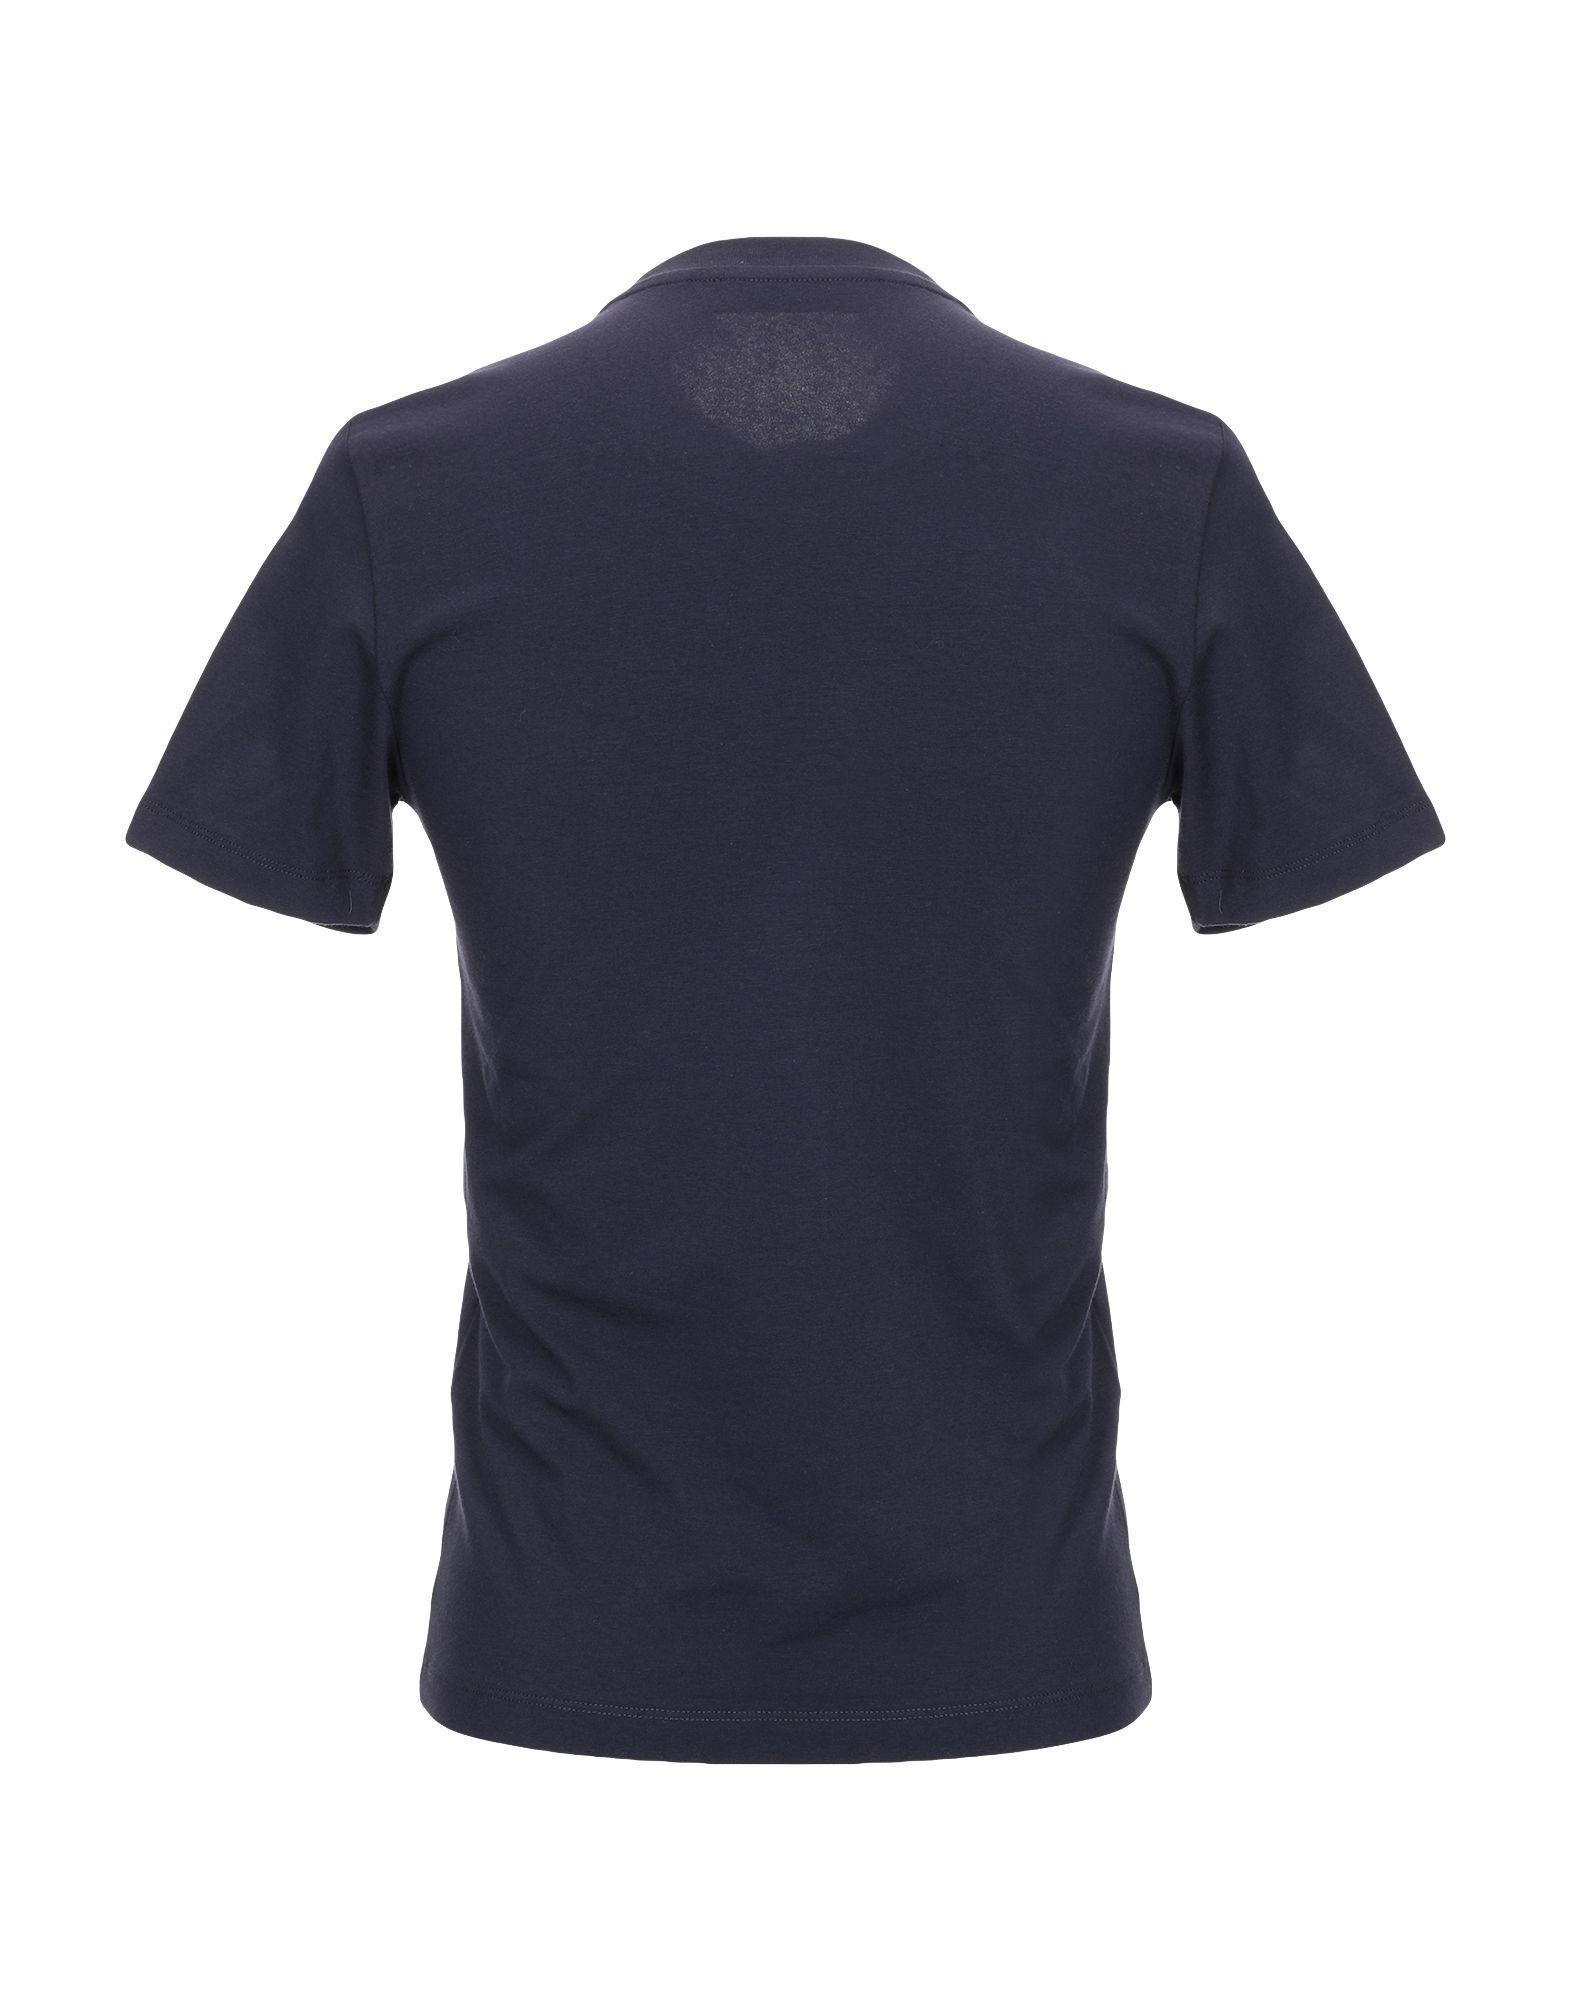 b926329c3f9 Lyst - Love Moschino T-shirt in Blue for Men